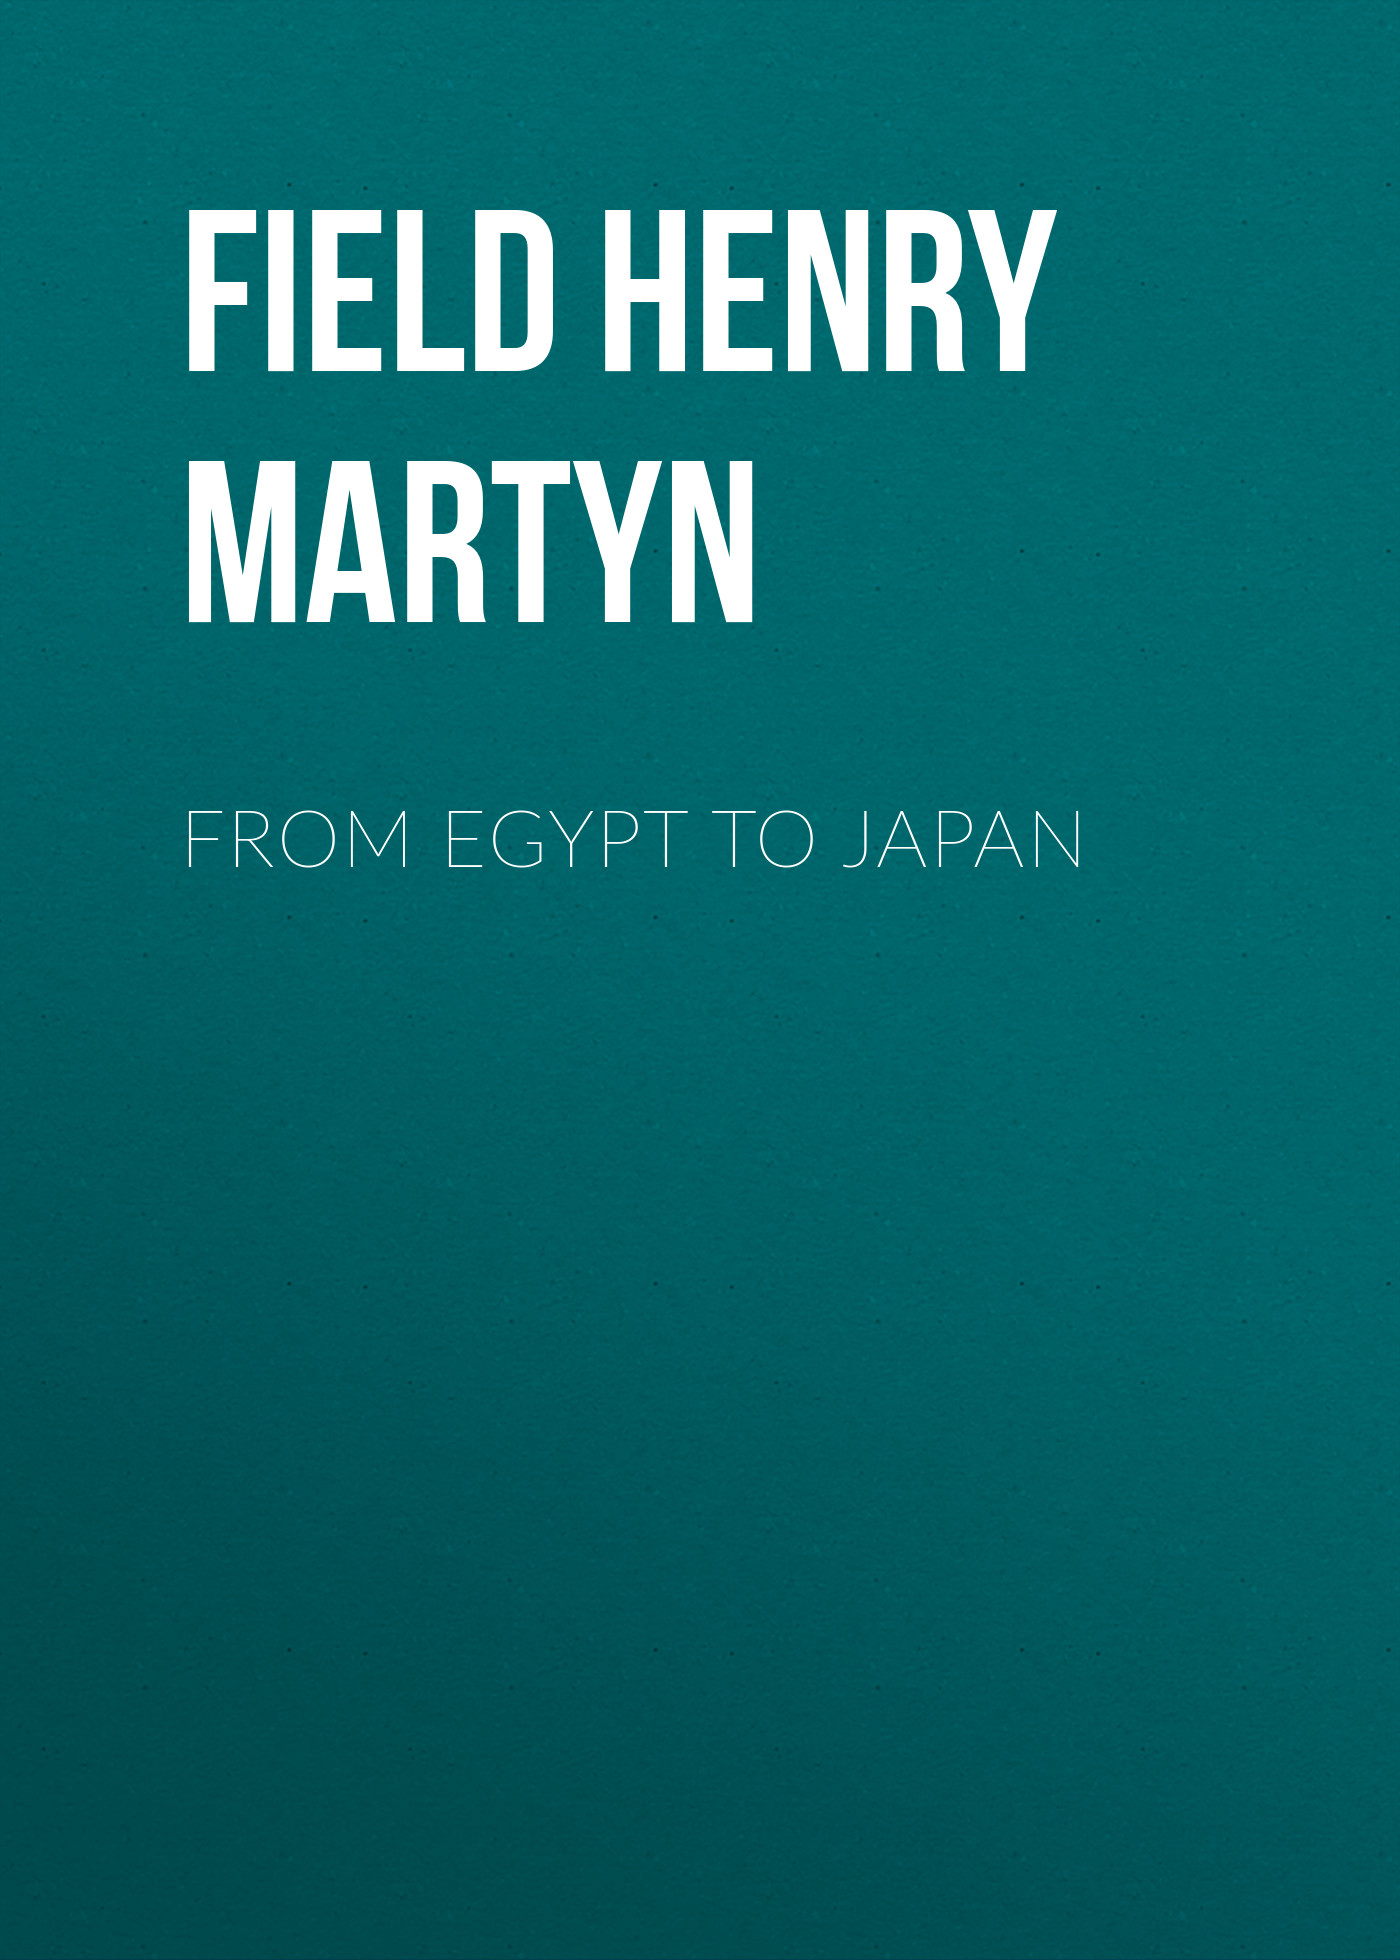 Field Henry Martyn From Egypt to Japan from field to fork